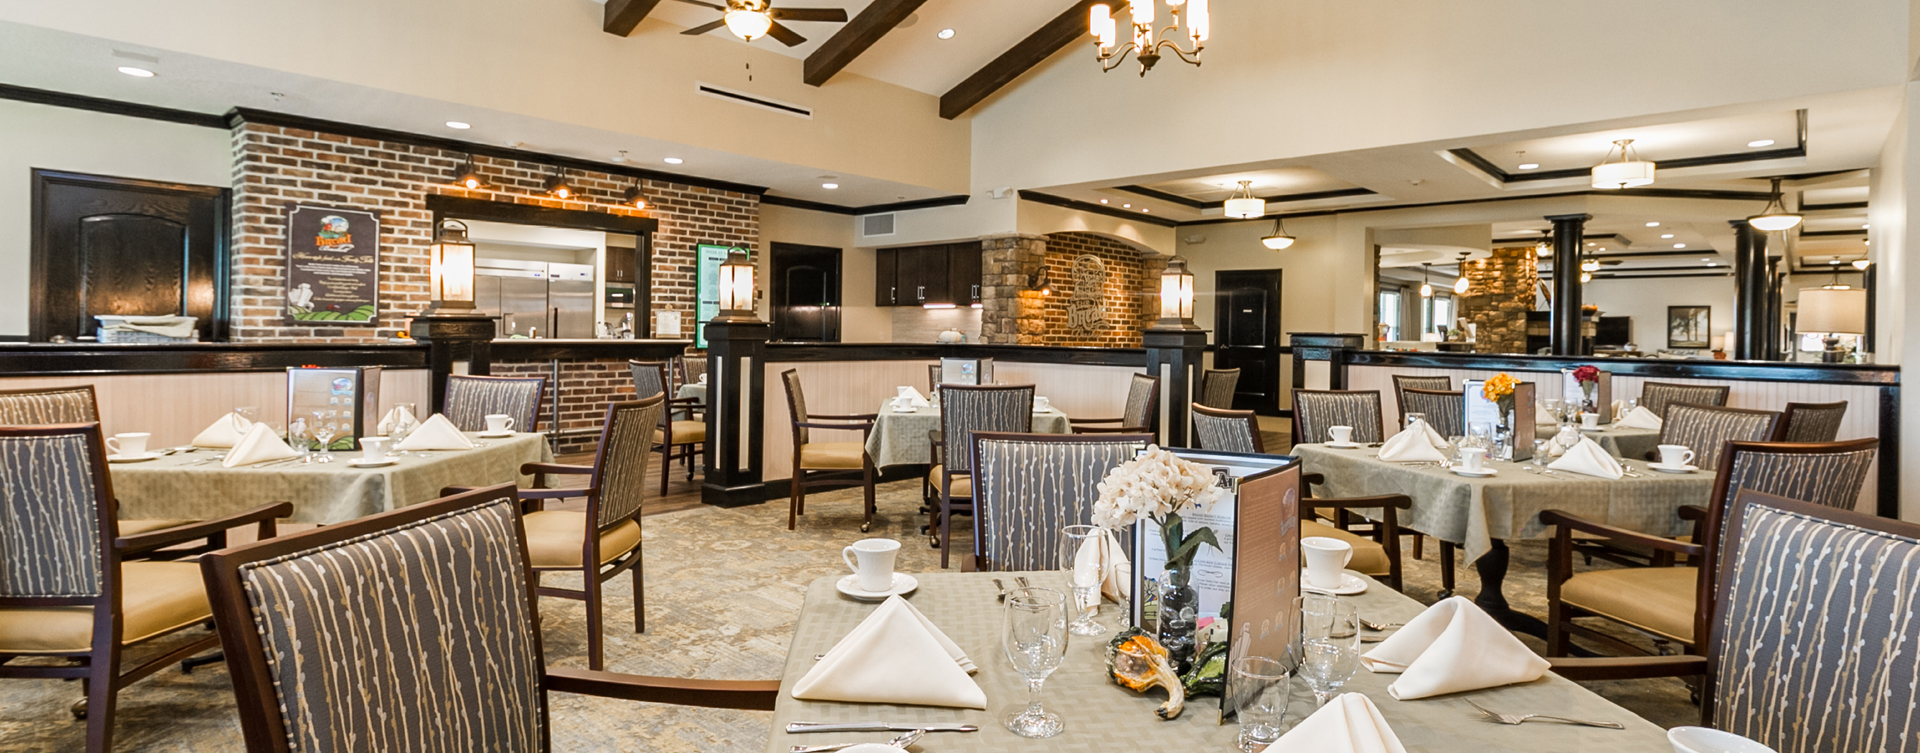 Enjoy restaurant -style meals served three times a day in our dining room at Bickford of Virginia Beach